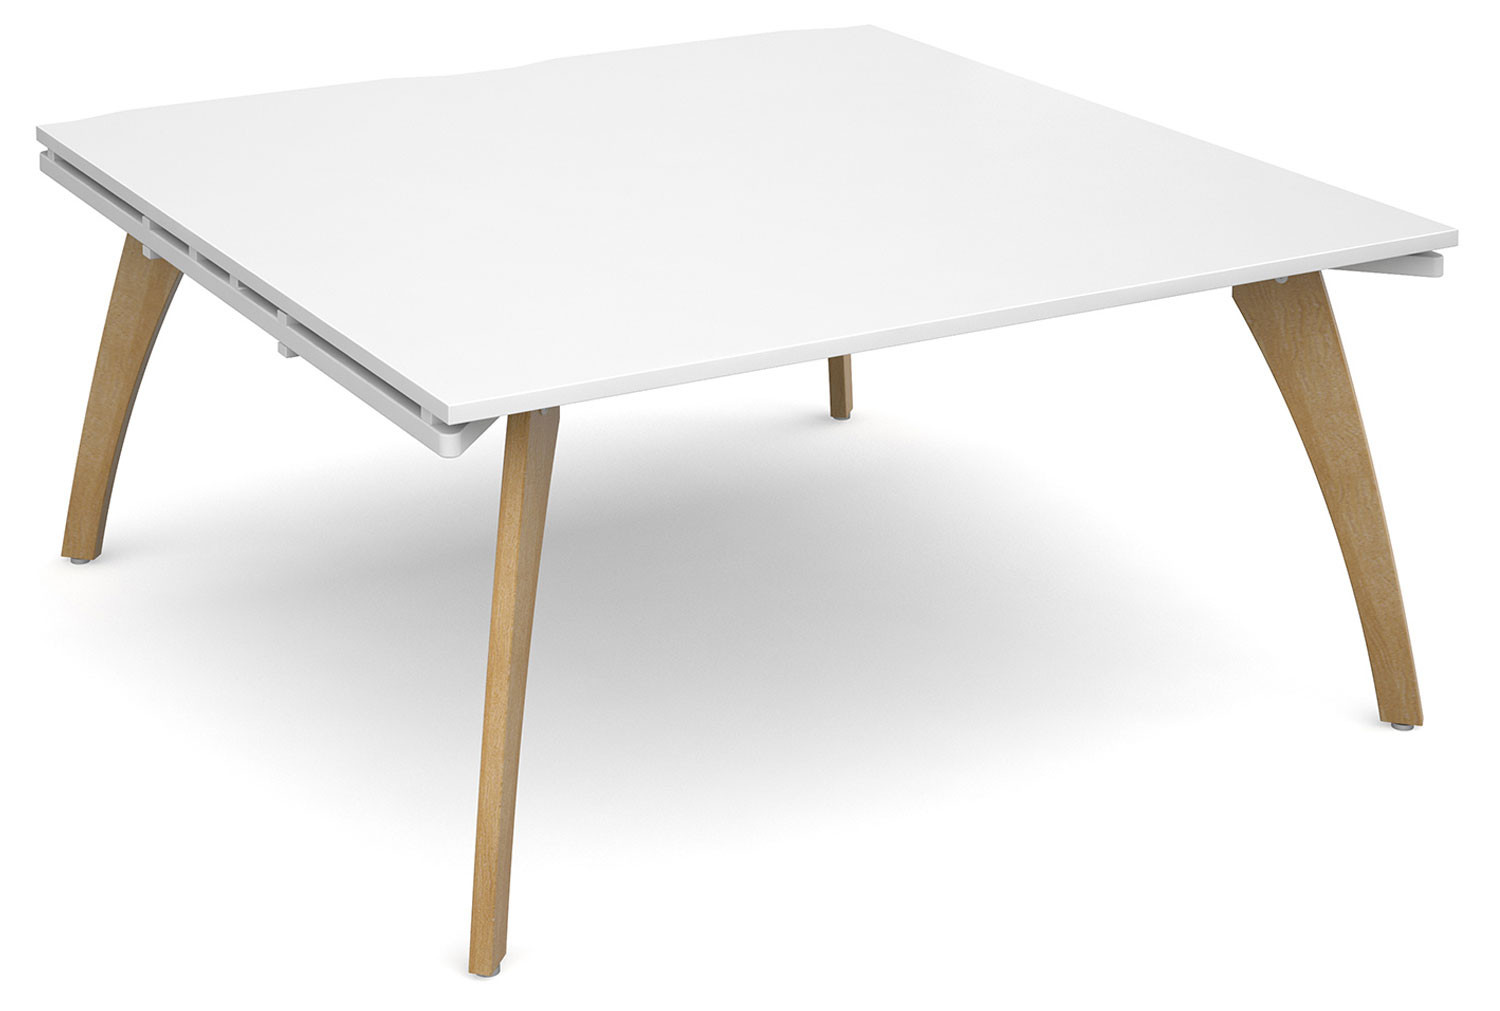 Distill Square Boardroom Table